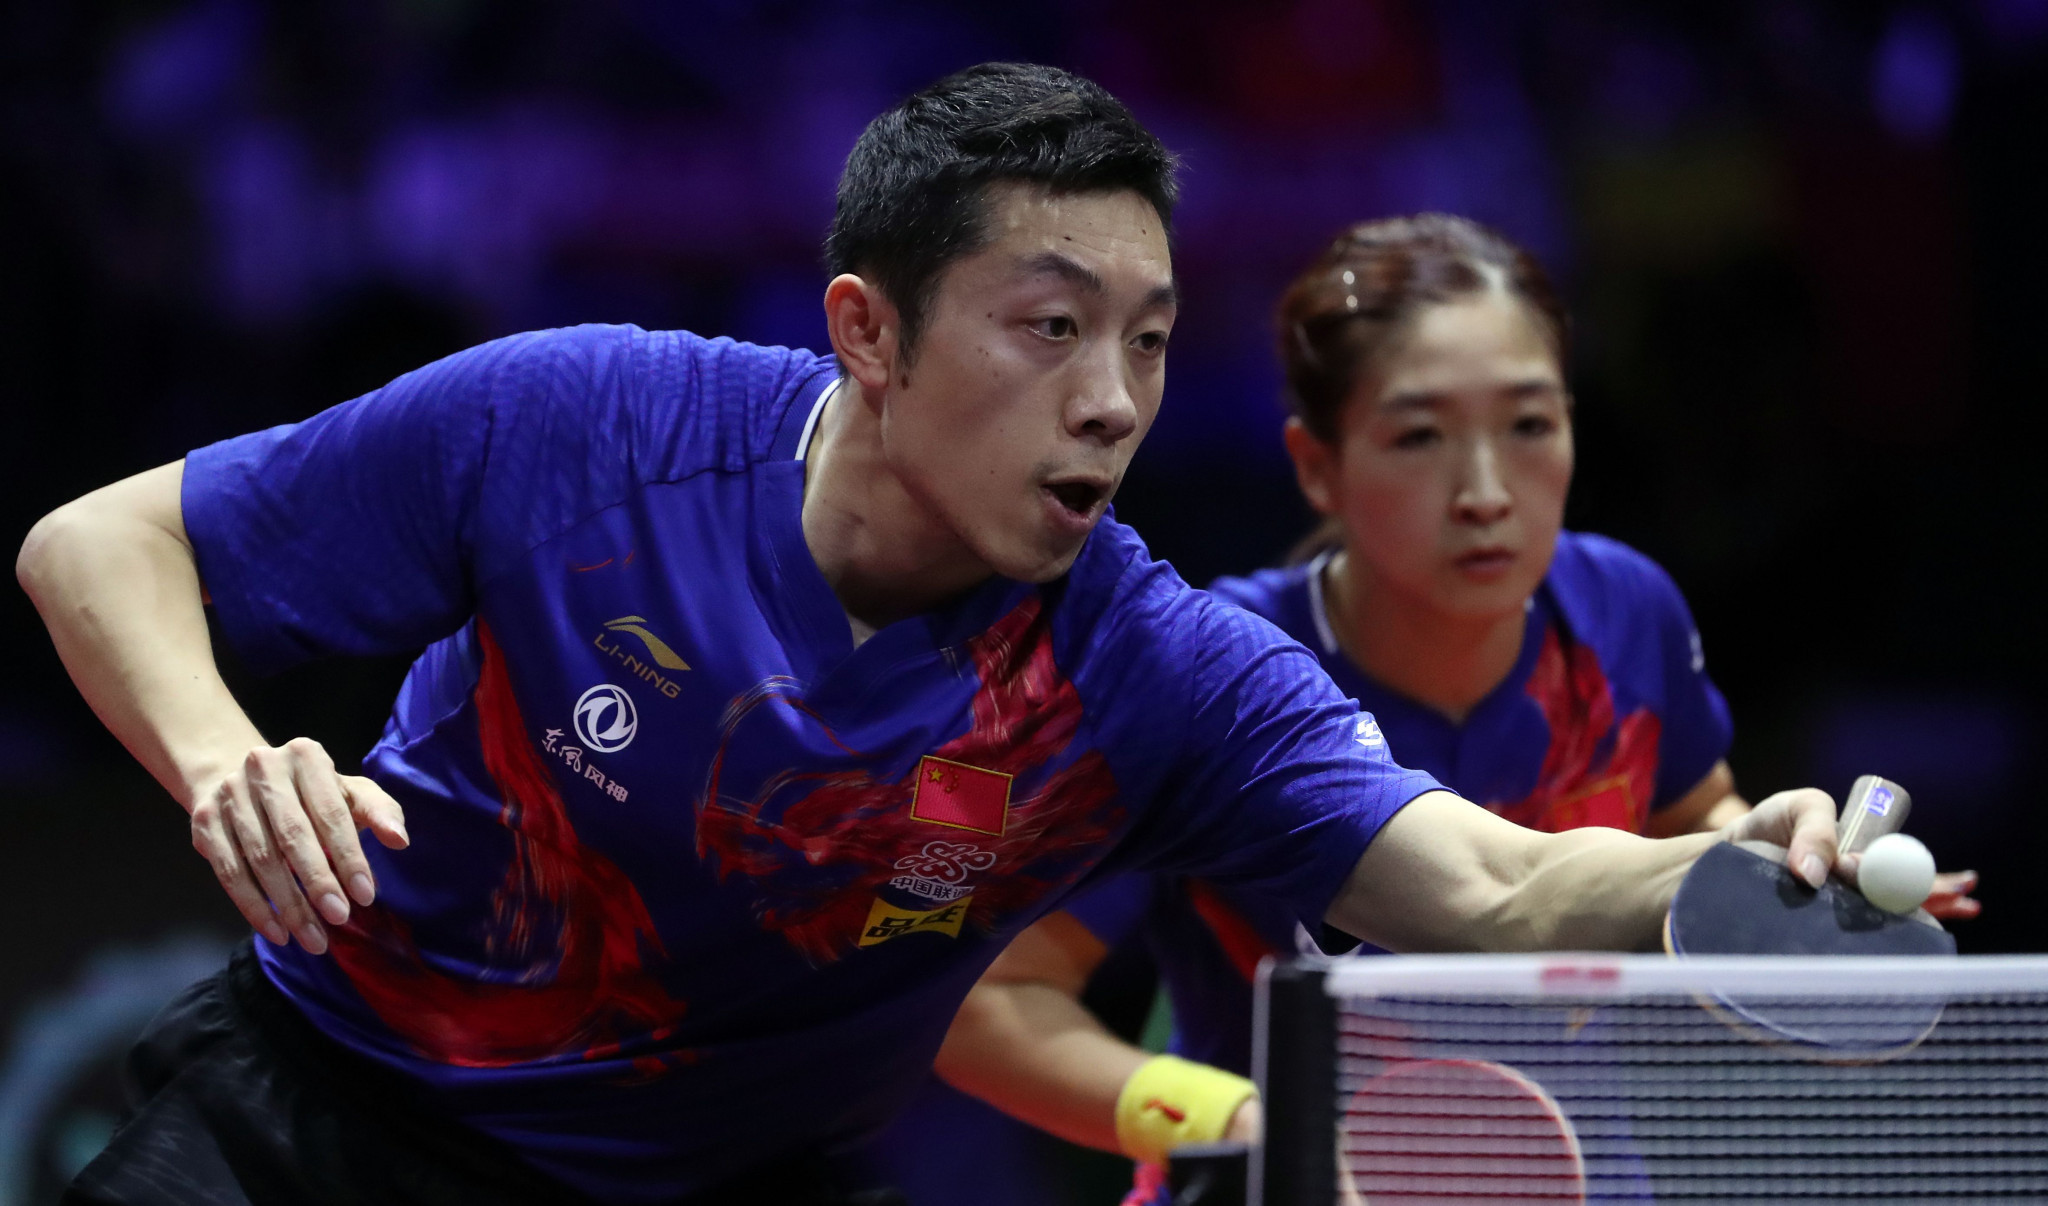 Top seeds stunned at ITTF China Open as Fan and Ding lose quarter finals